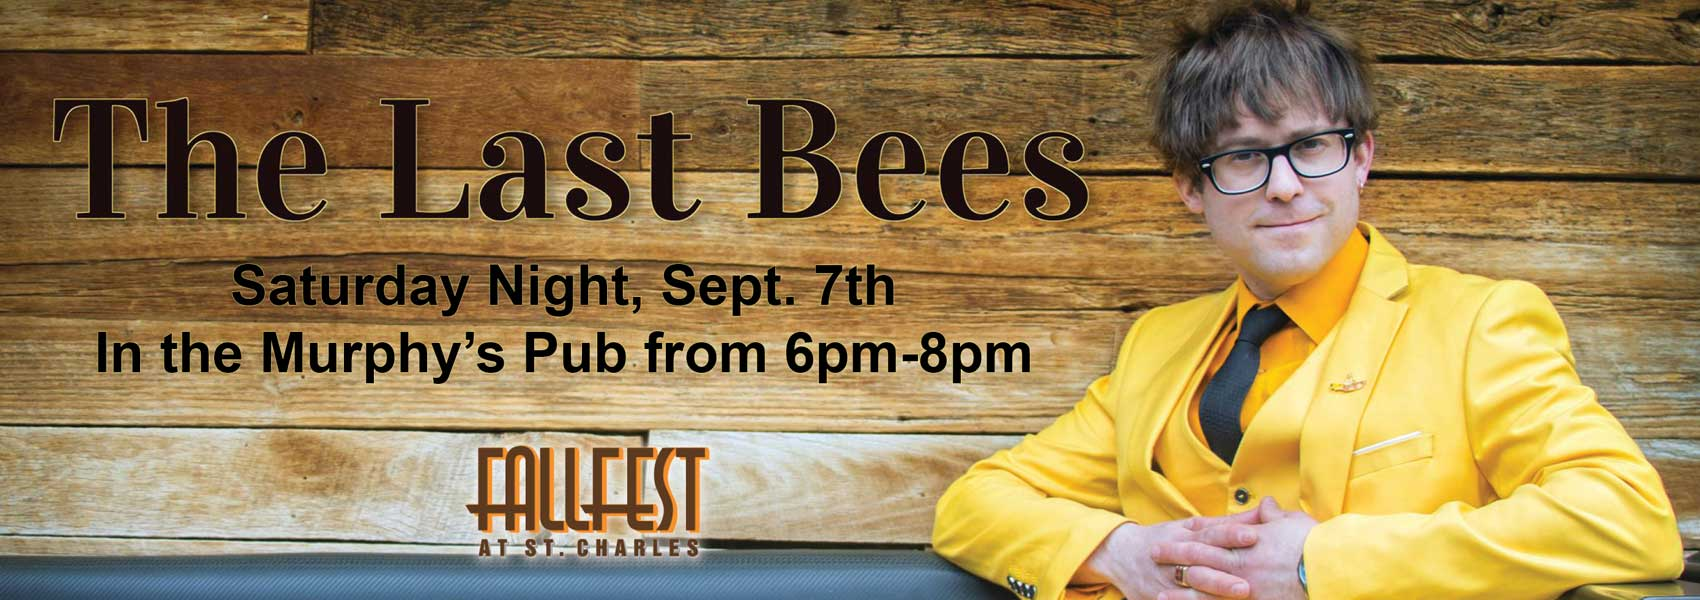 The Last Bees - Murphy's Pub - Saturday Sept 7th 6-8pm